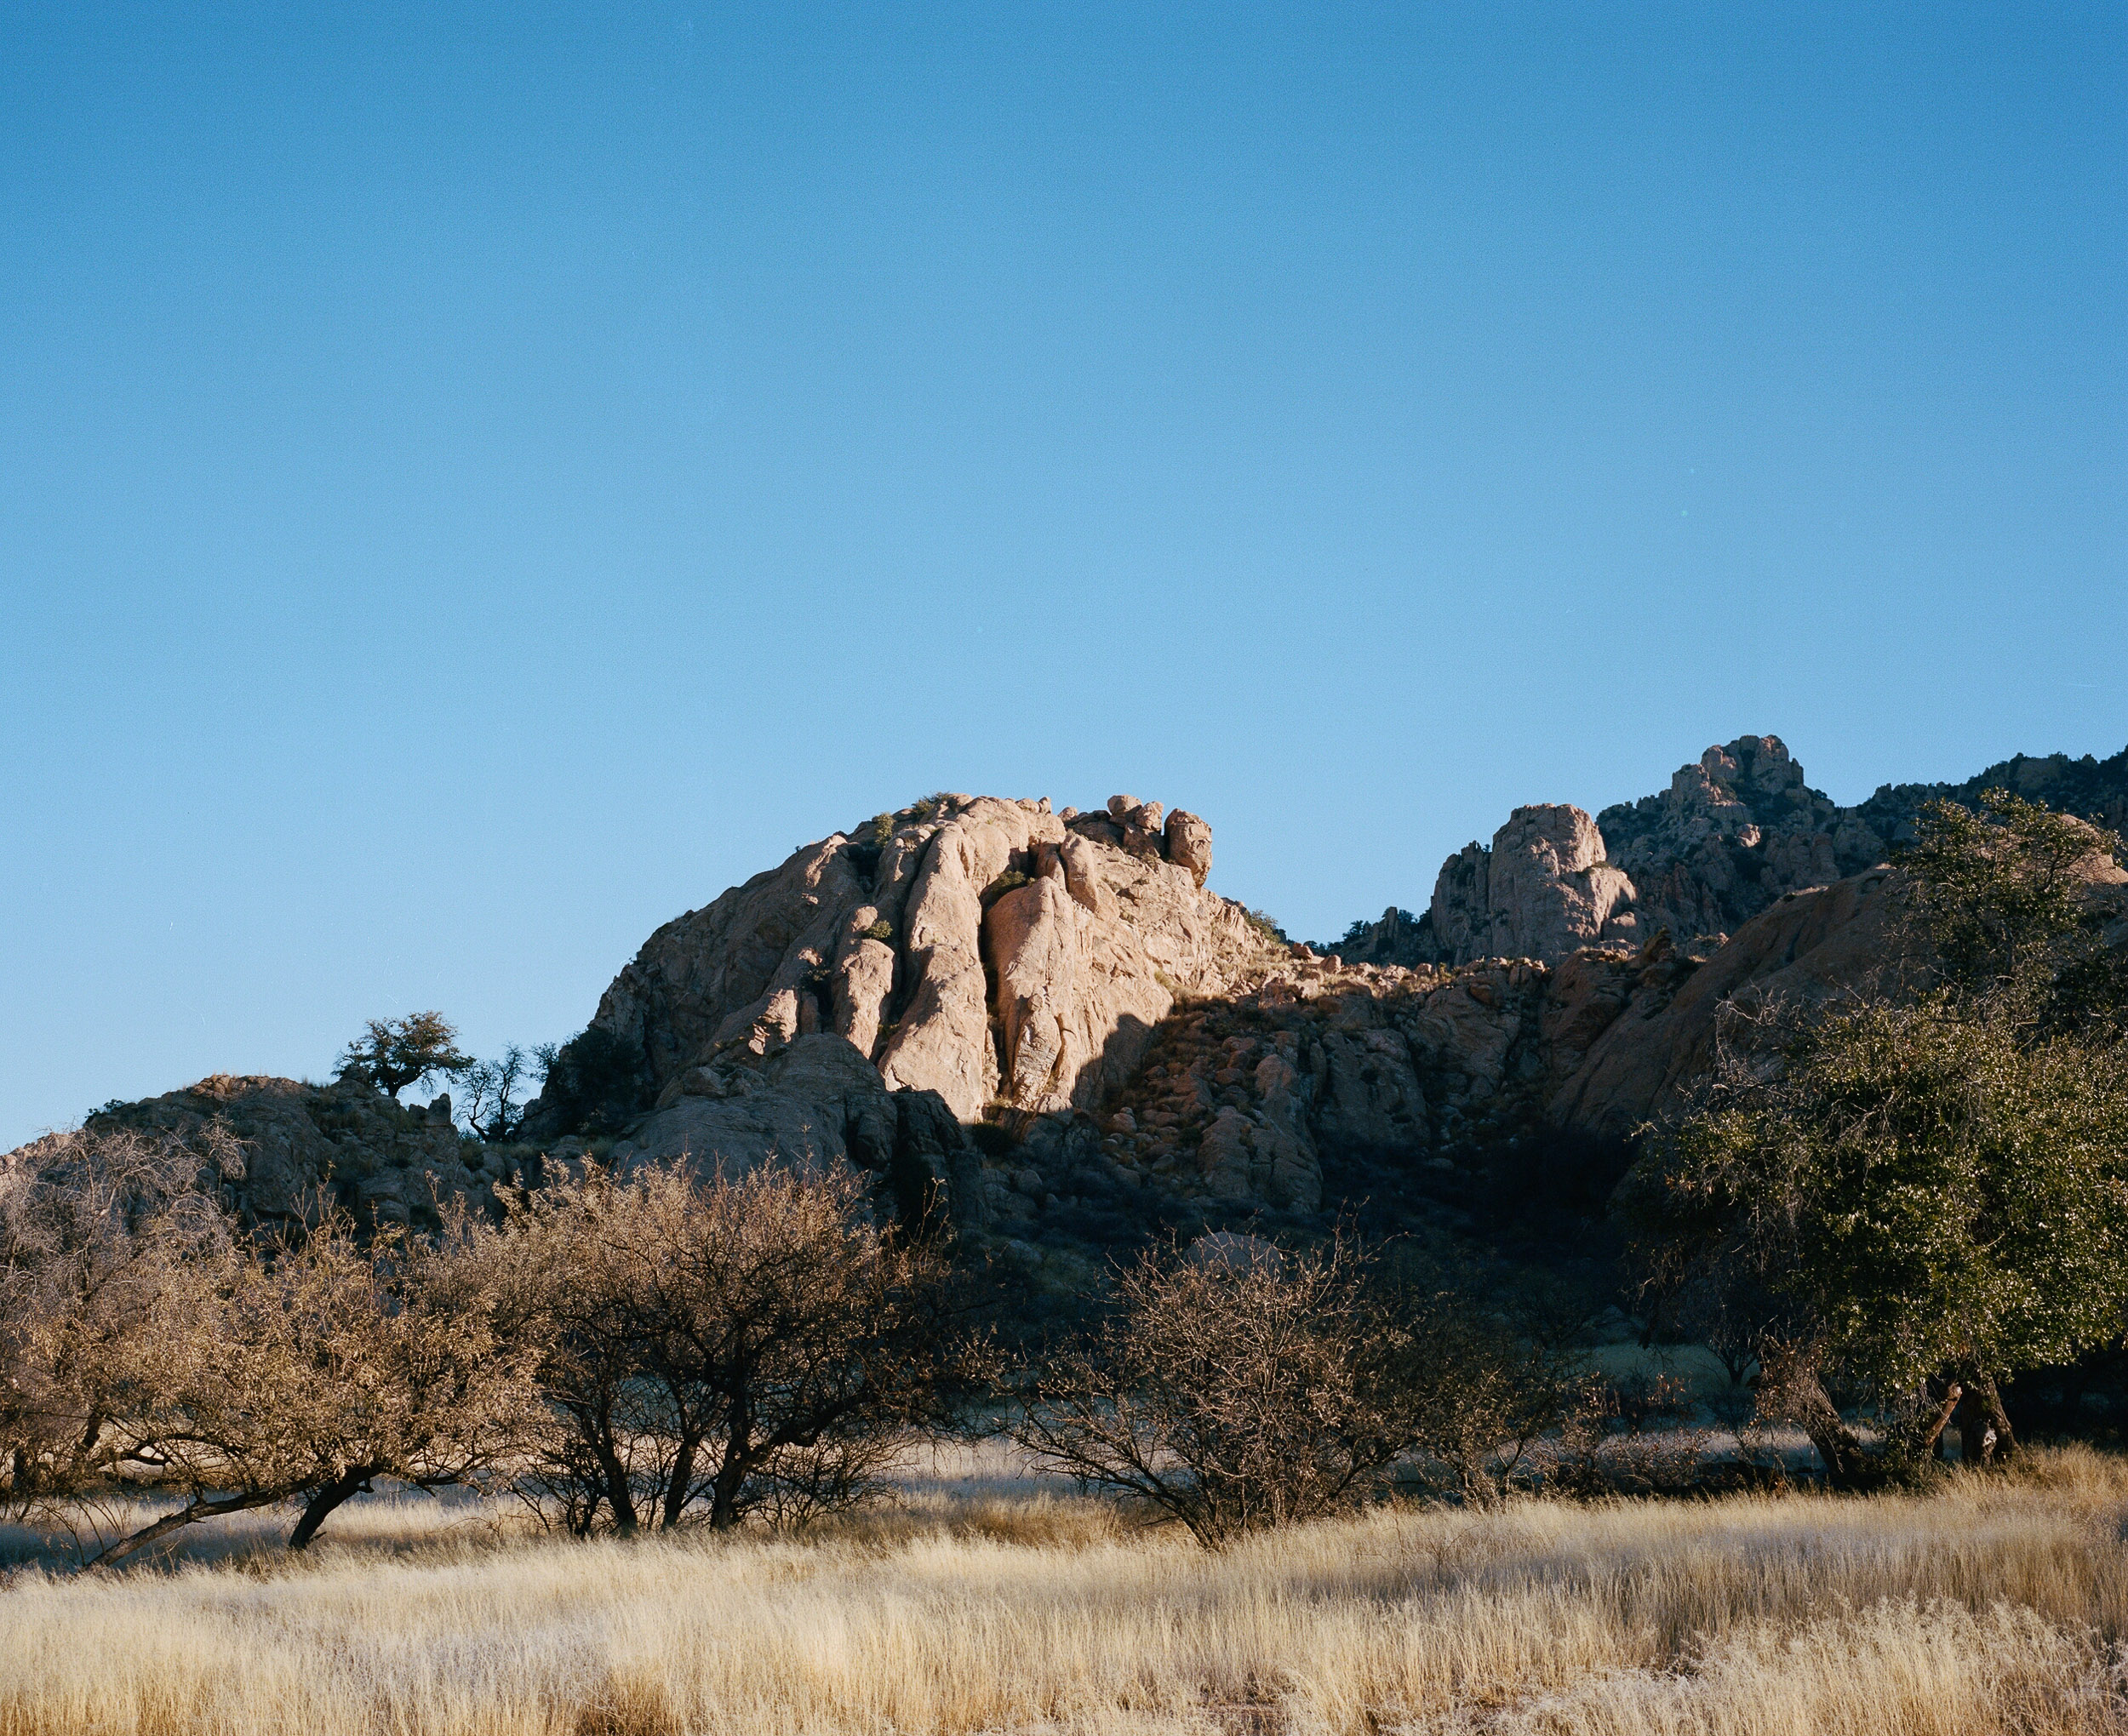 Cochise Stronghold in the Arizona desert